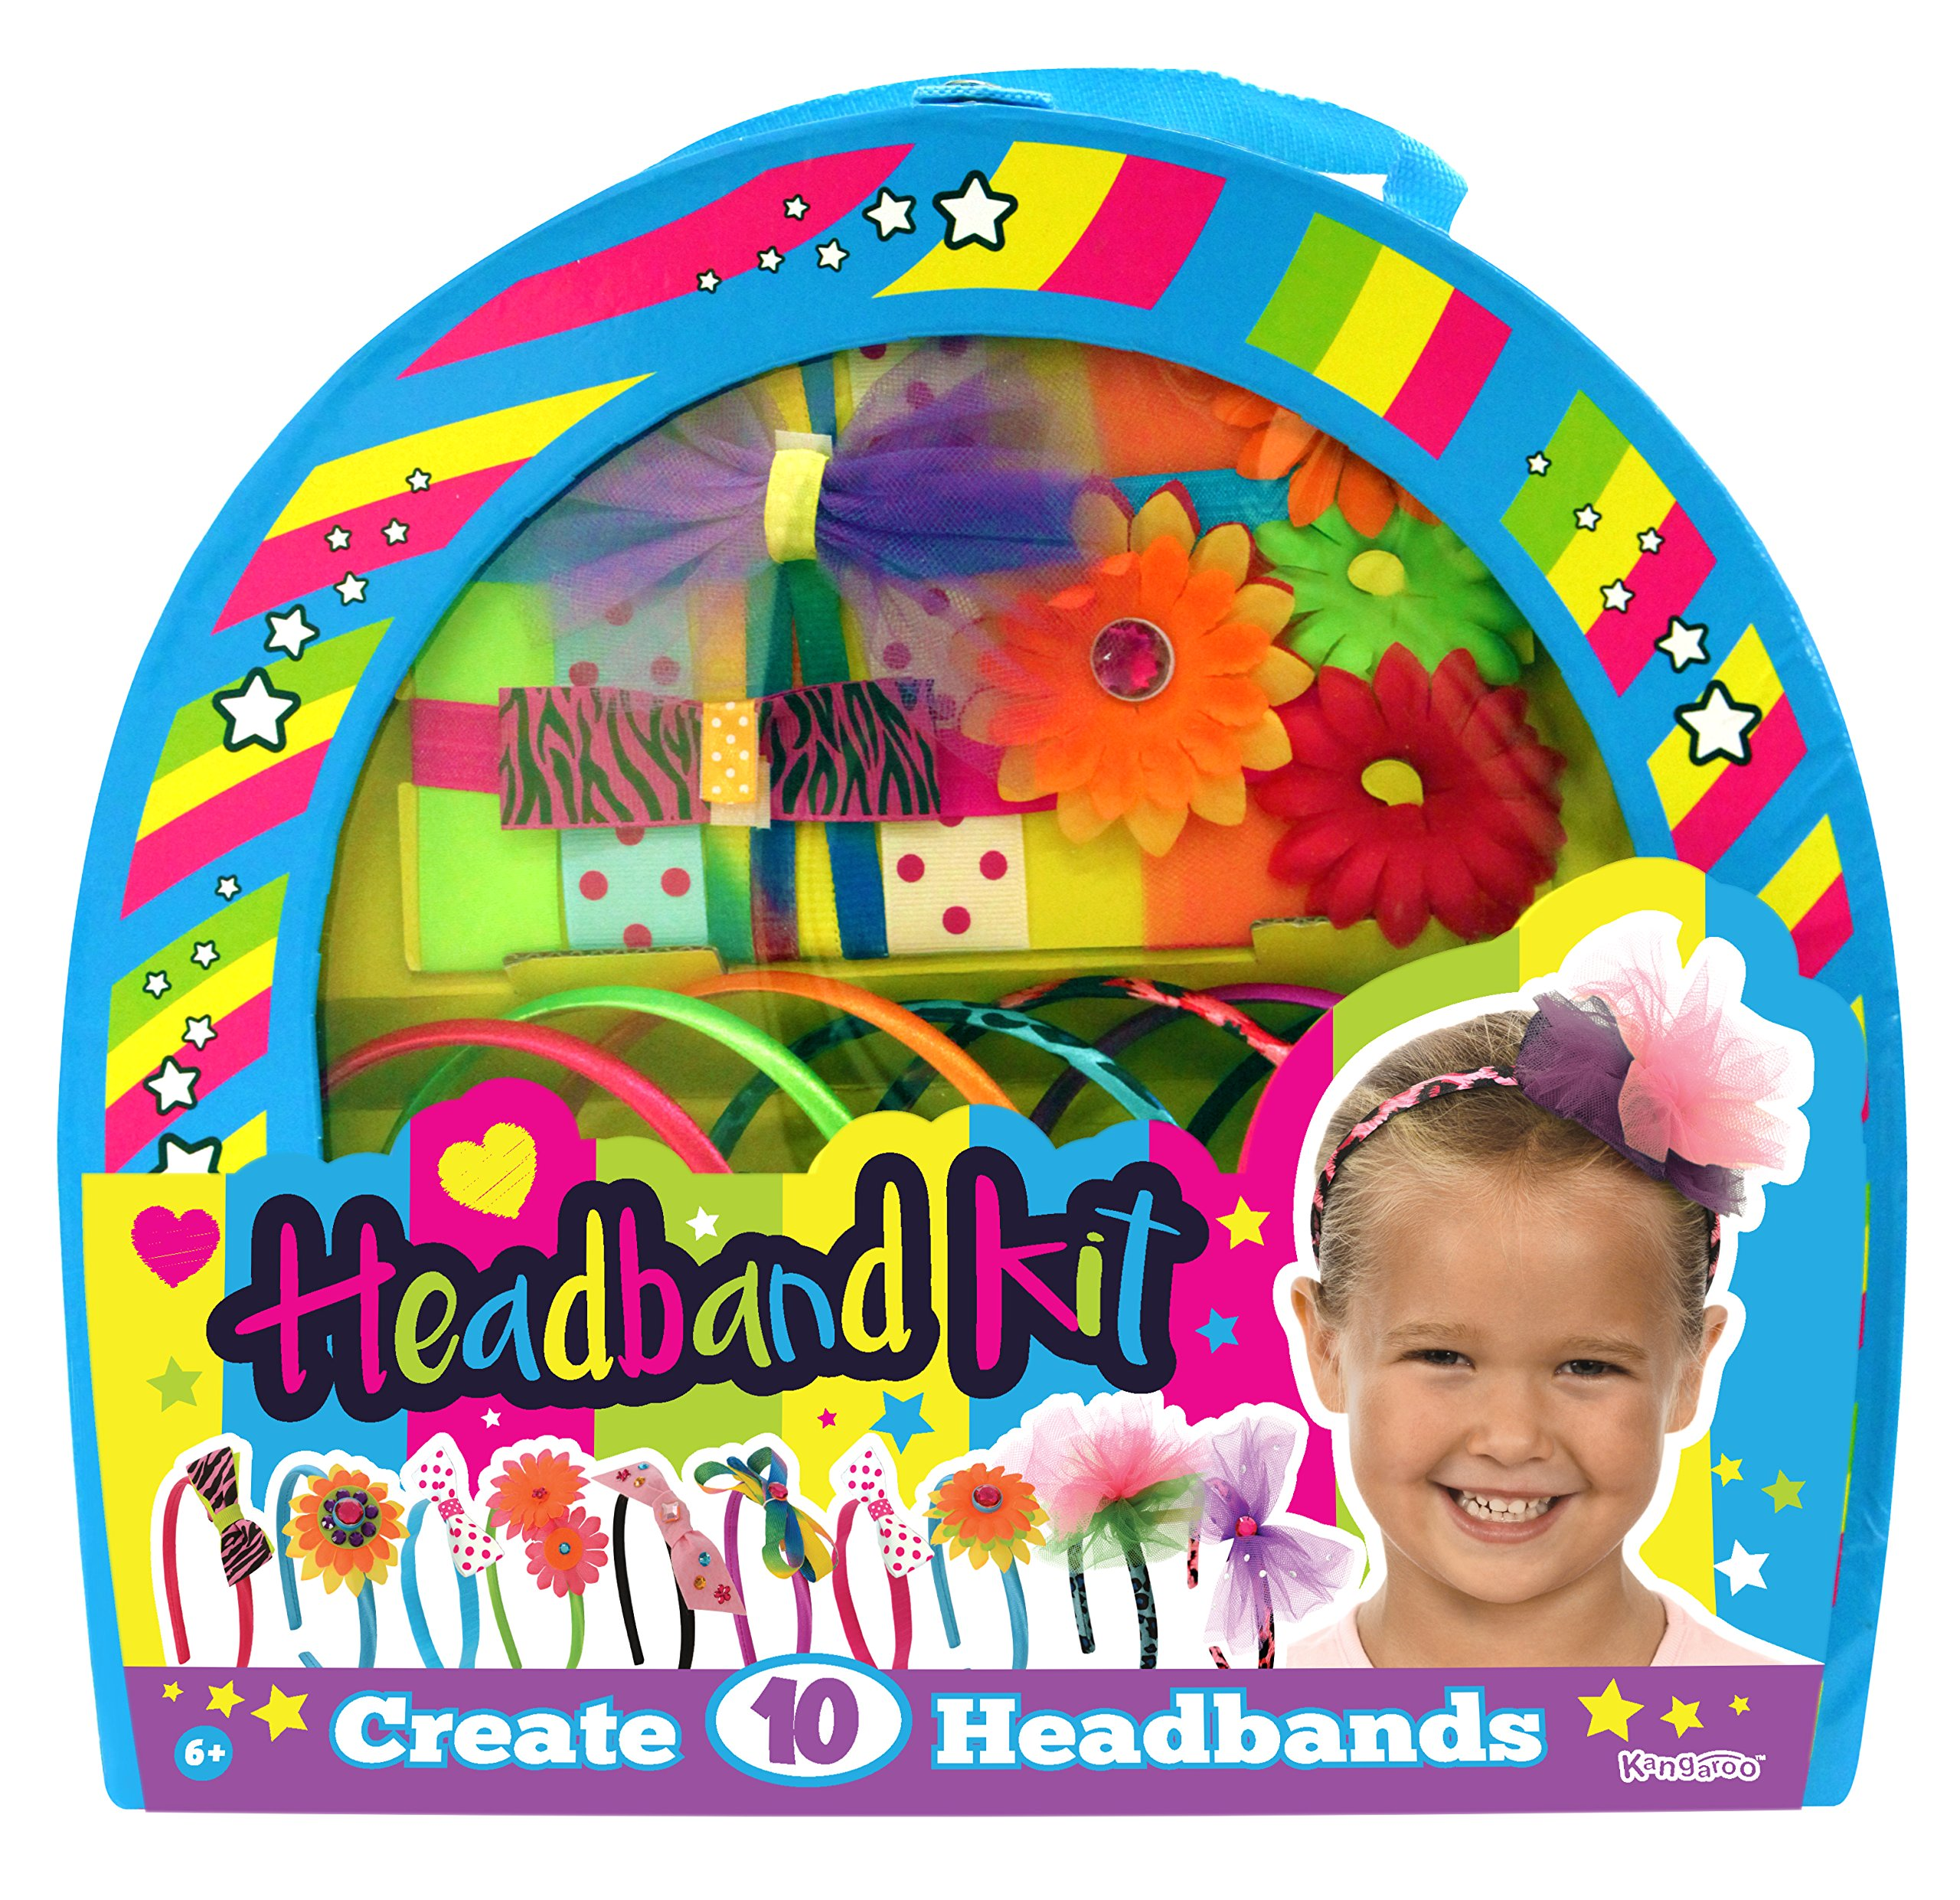 Kangaroo's Girls Toys; Kids Fashion Headbands Kit, 134 Pieces